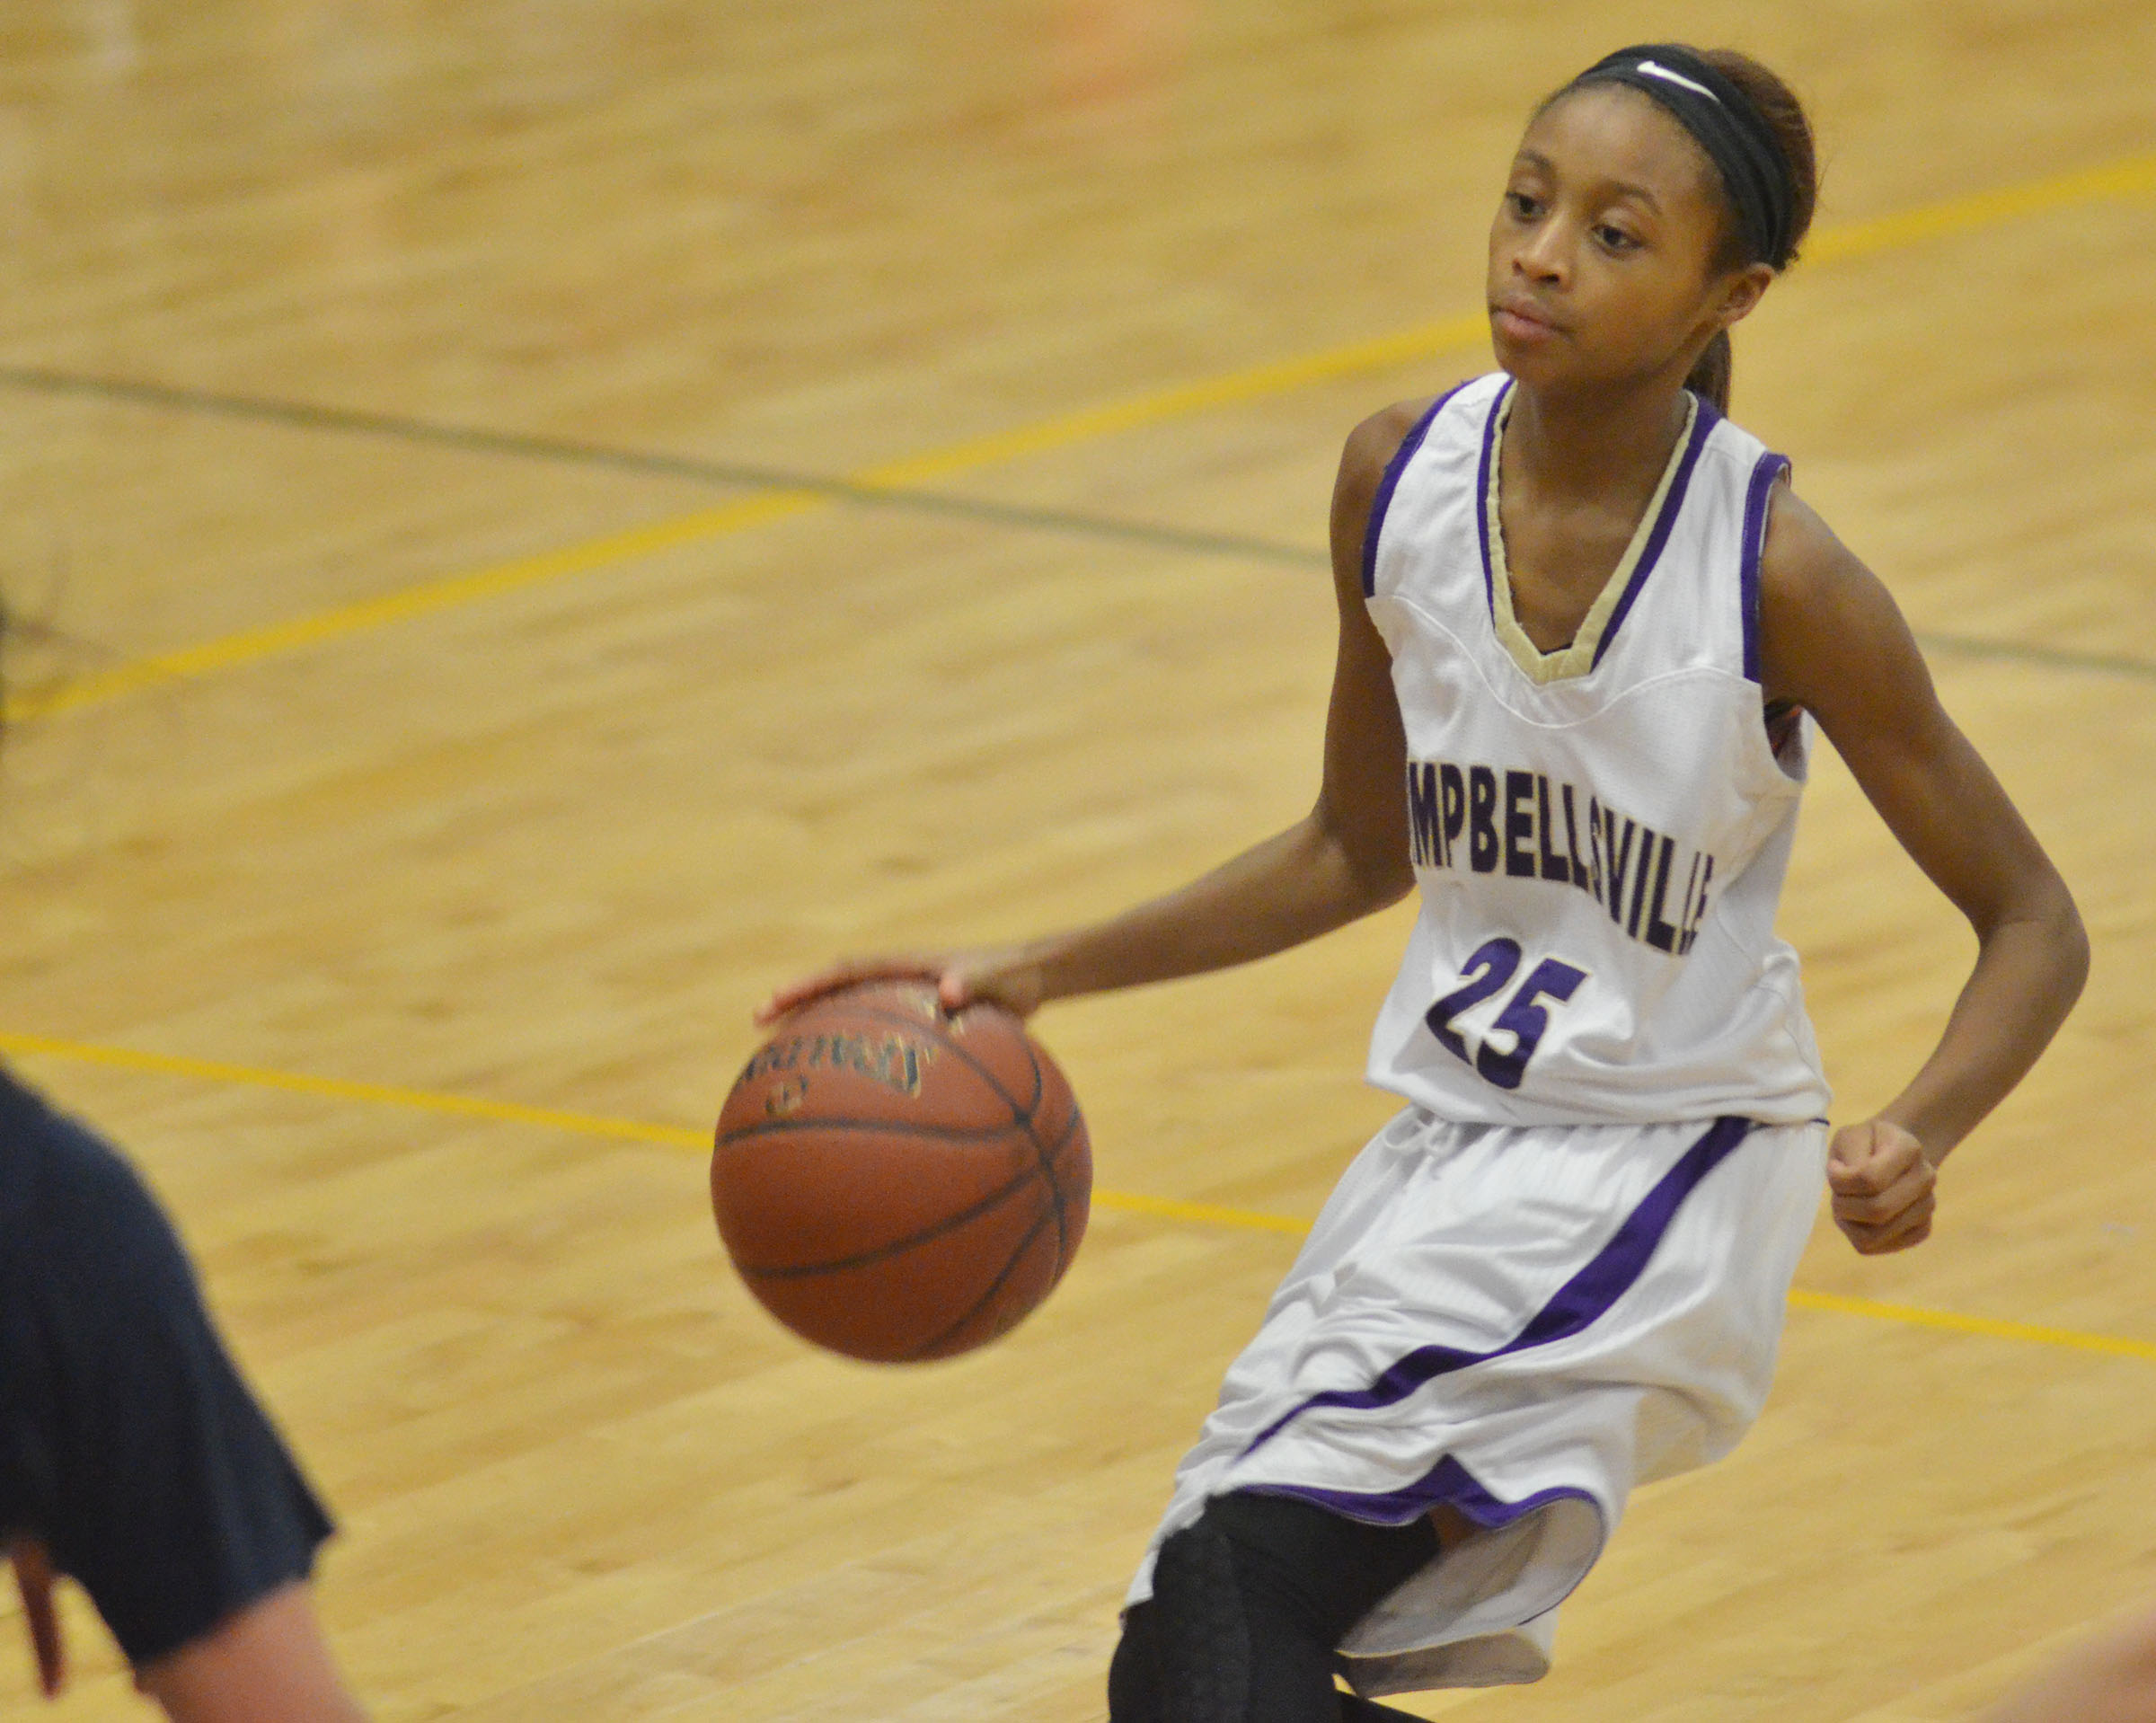 Campbellsville Middle School seventh-grader Bri Gowdy dribbles.